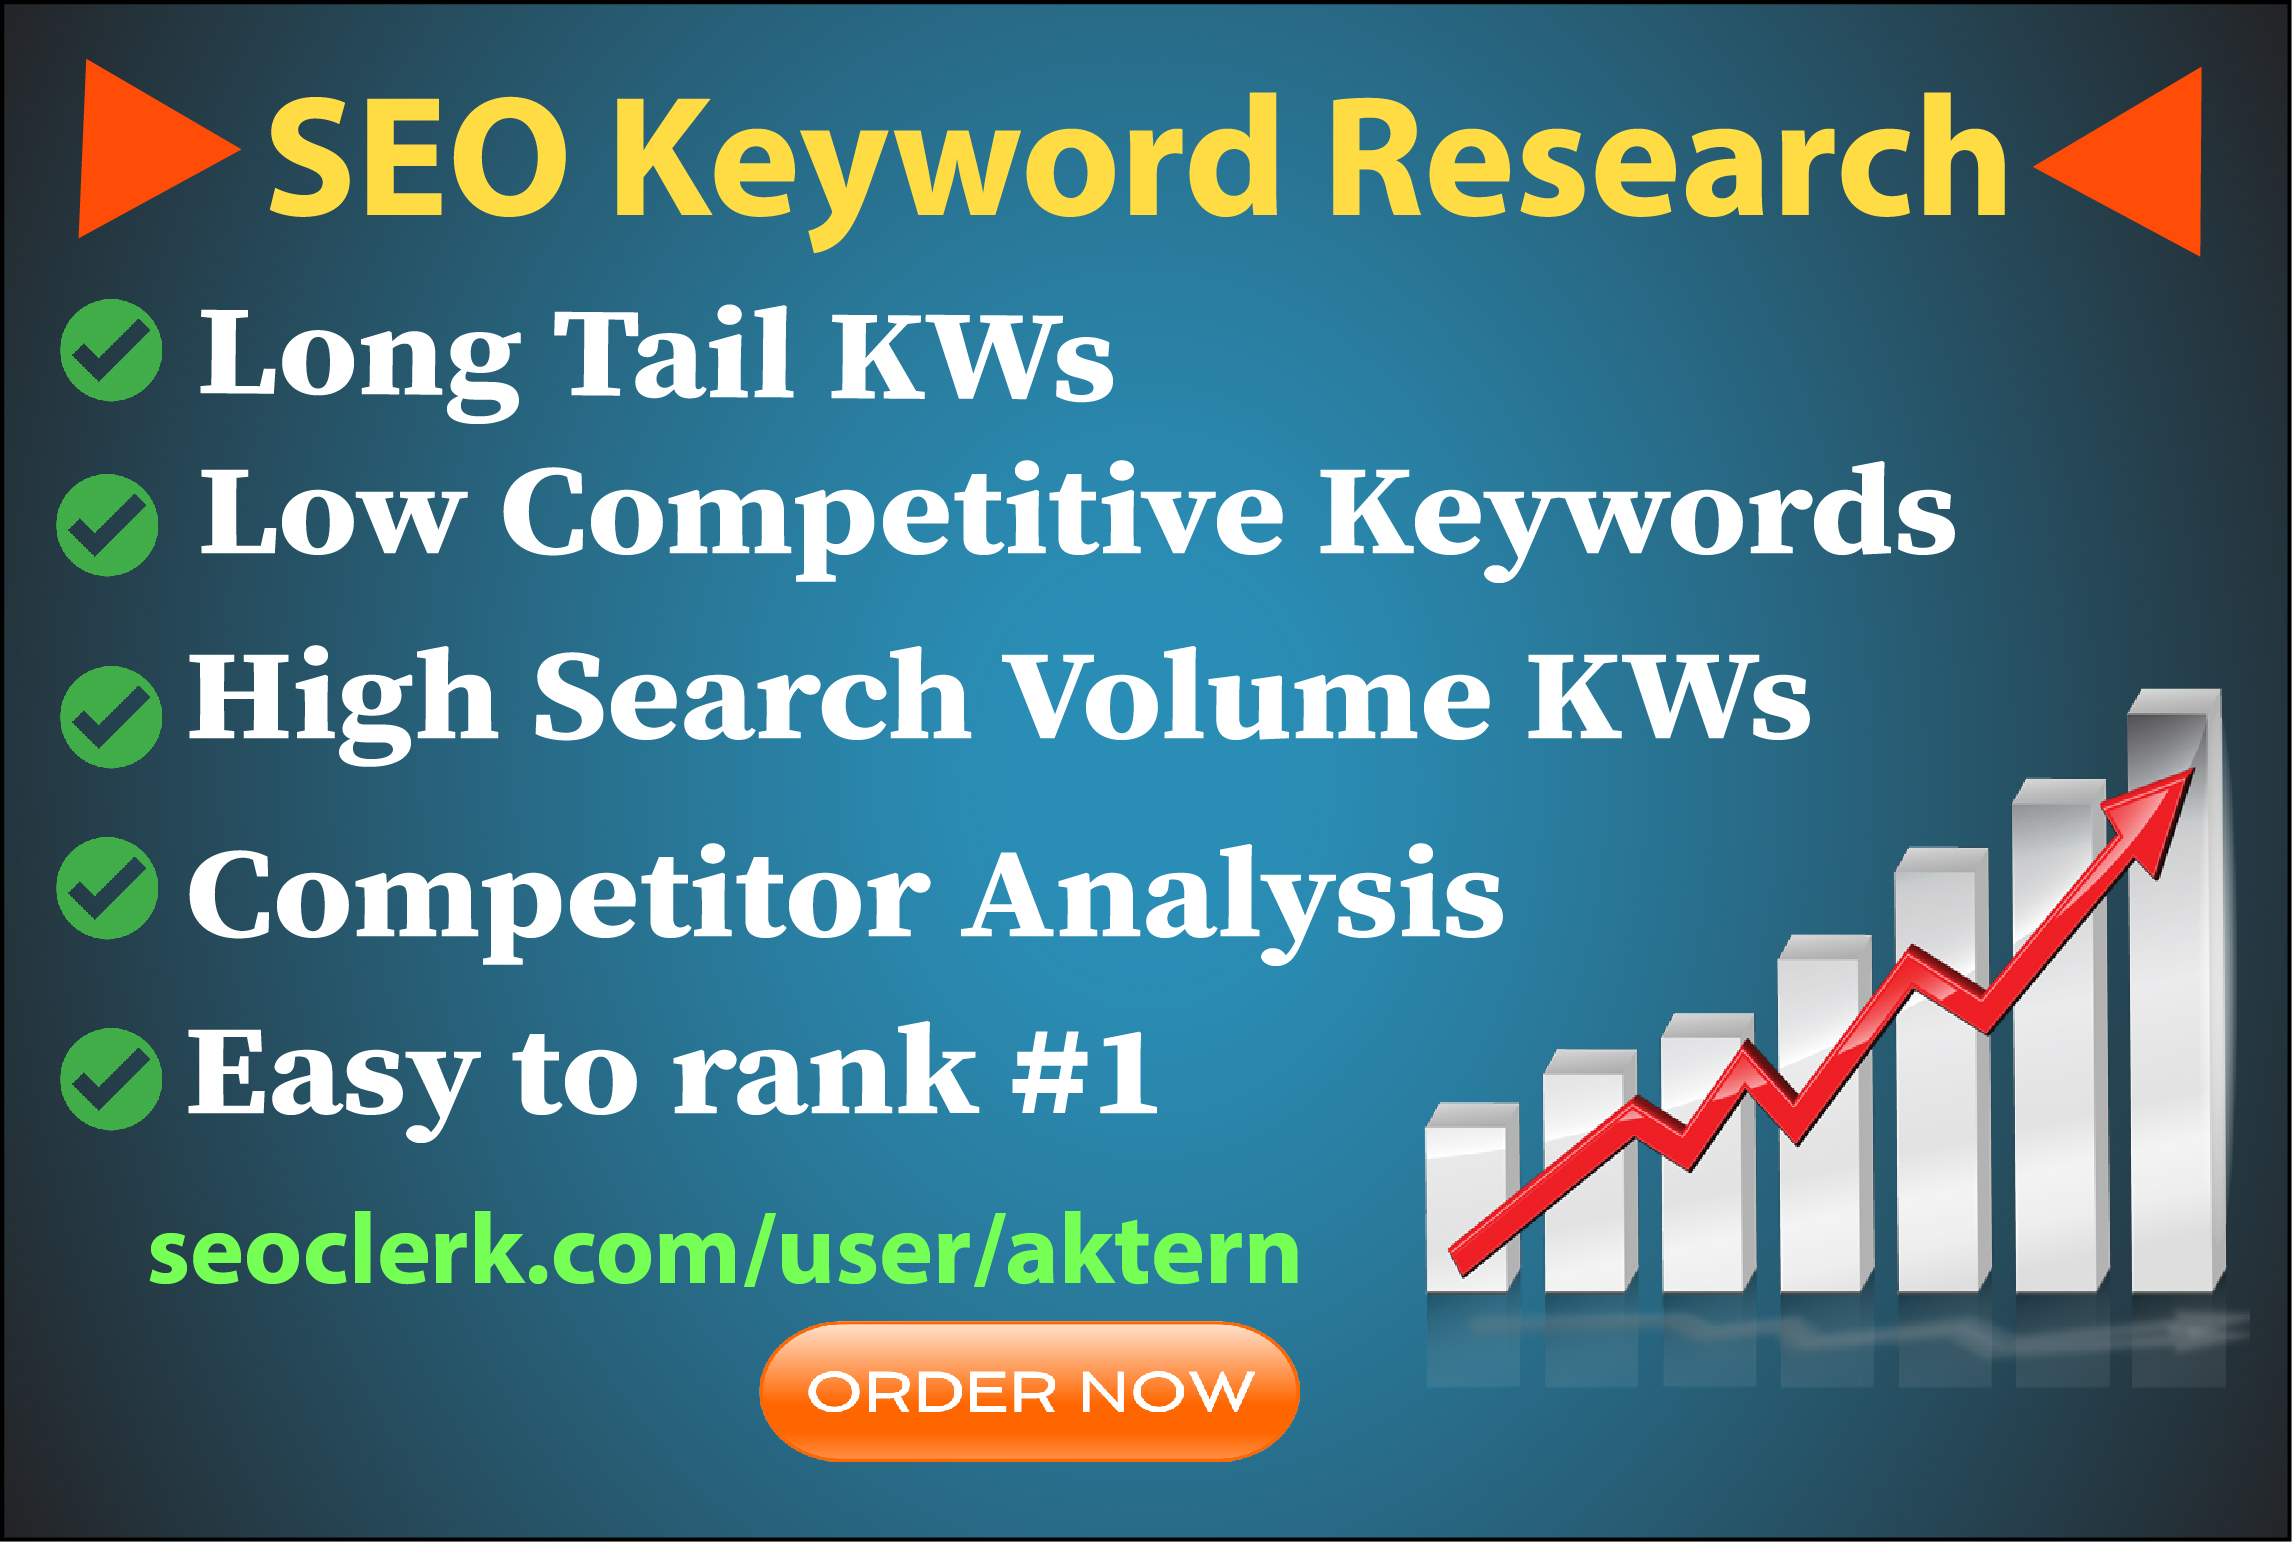 I will do best SEO keyword research for your niche or business